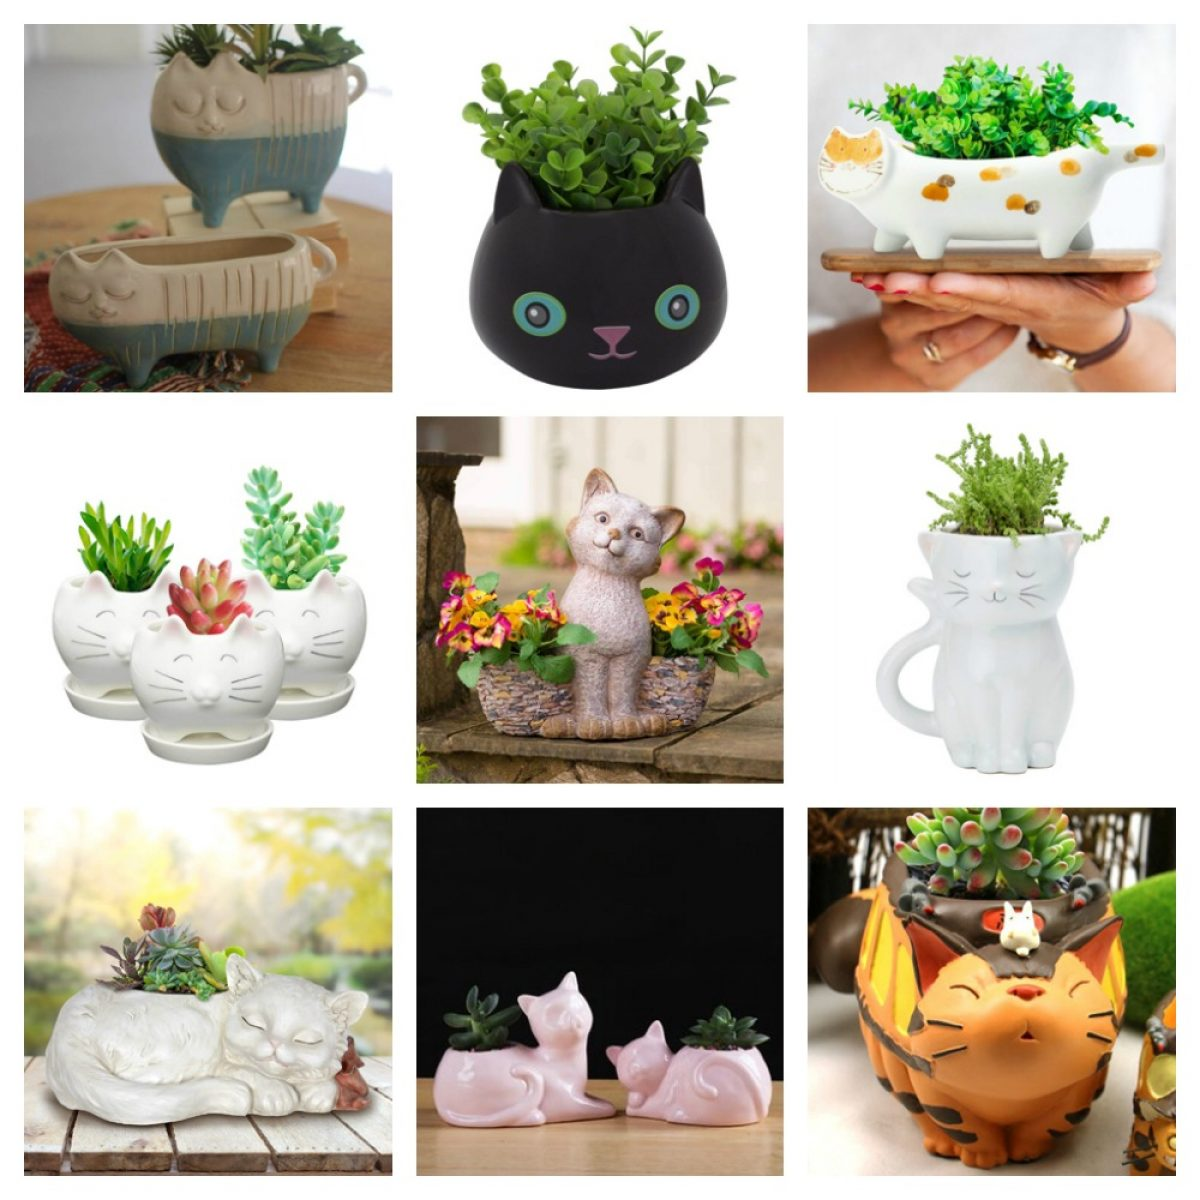 Cute Cat Planters And Plant Pots For People Who Love Kitties Meow As Fluff